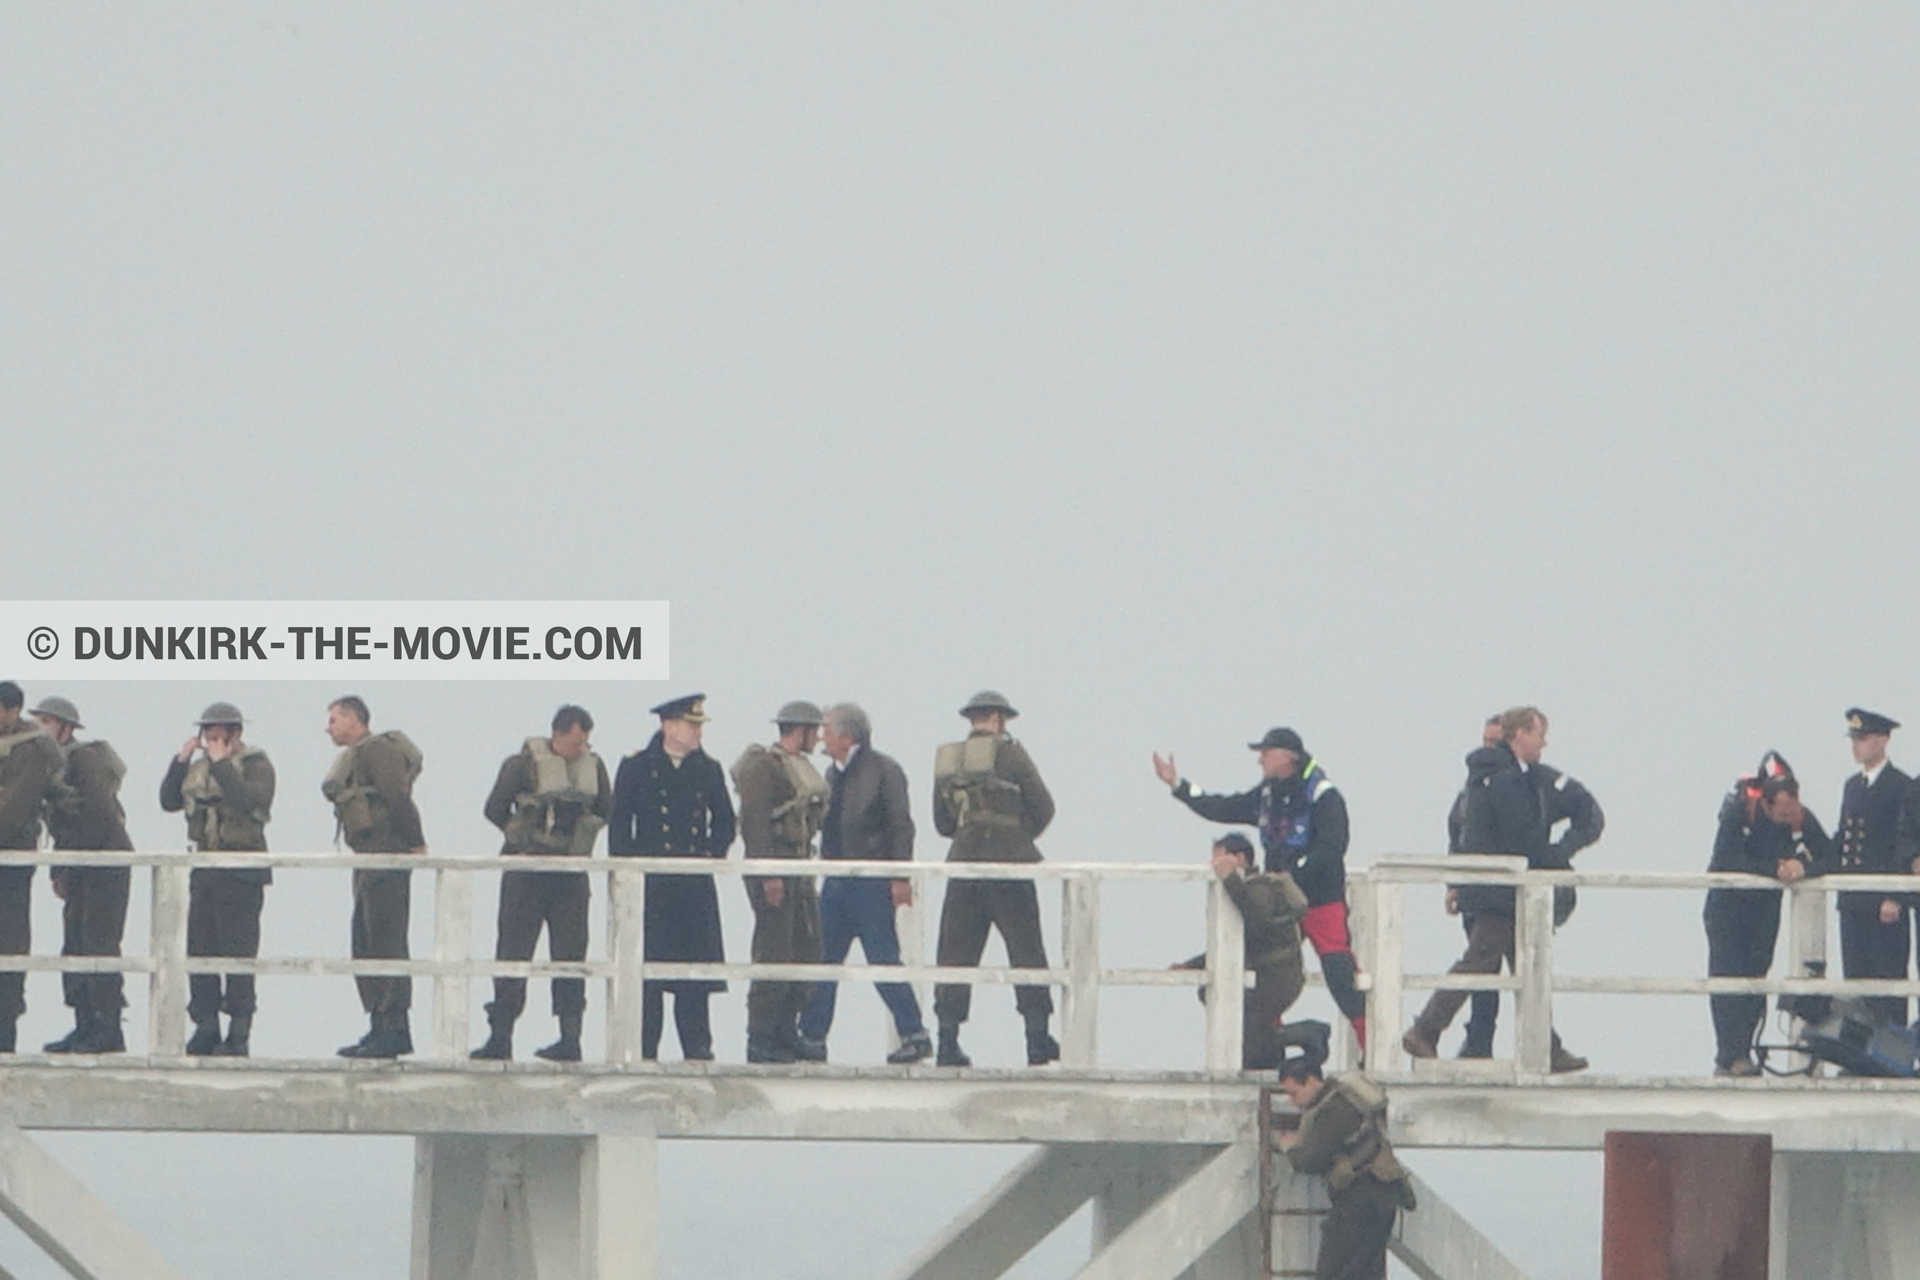 Picture with actor, grey sky, supernumeraries, Hoyte van Hoytema, EST pier, Kenneth Branagh, Christopher Nolan, technical team, Nilo Otero,  from behind the scene of the Dunkirk movie by Nolan